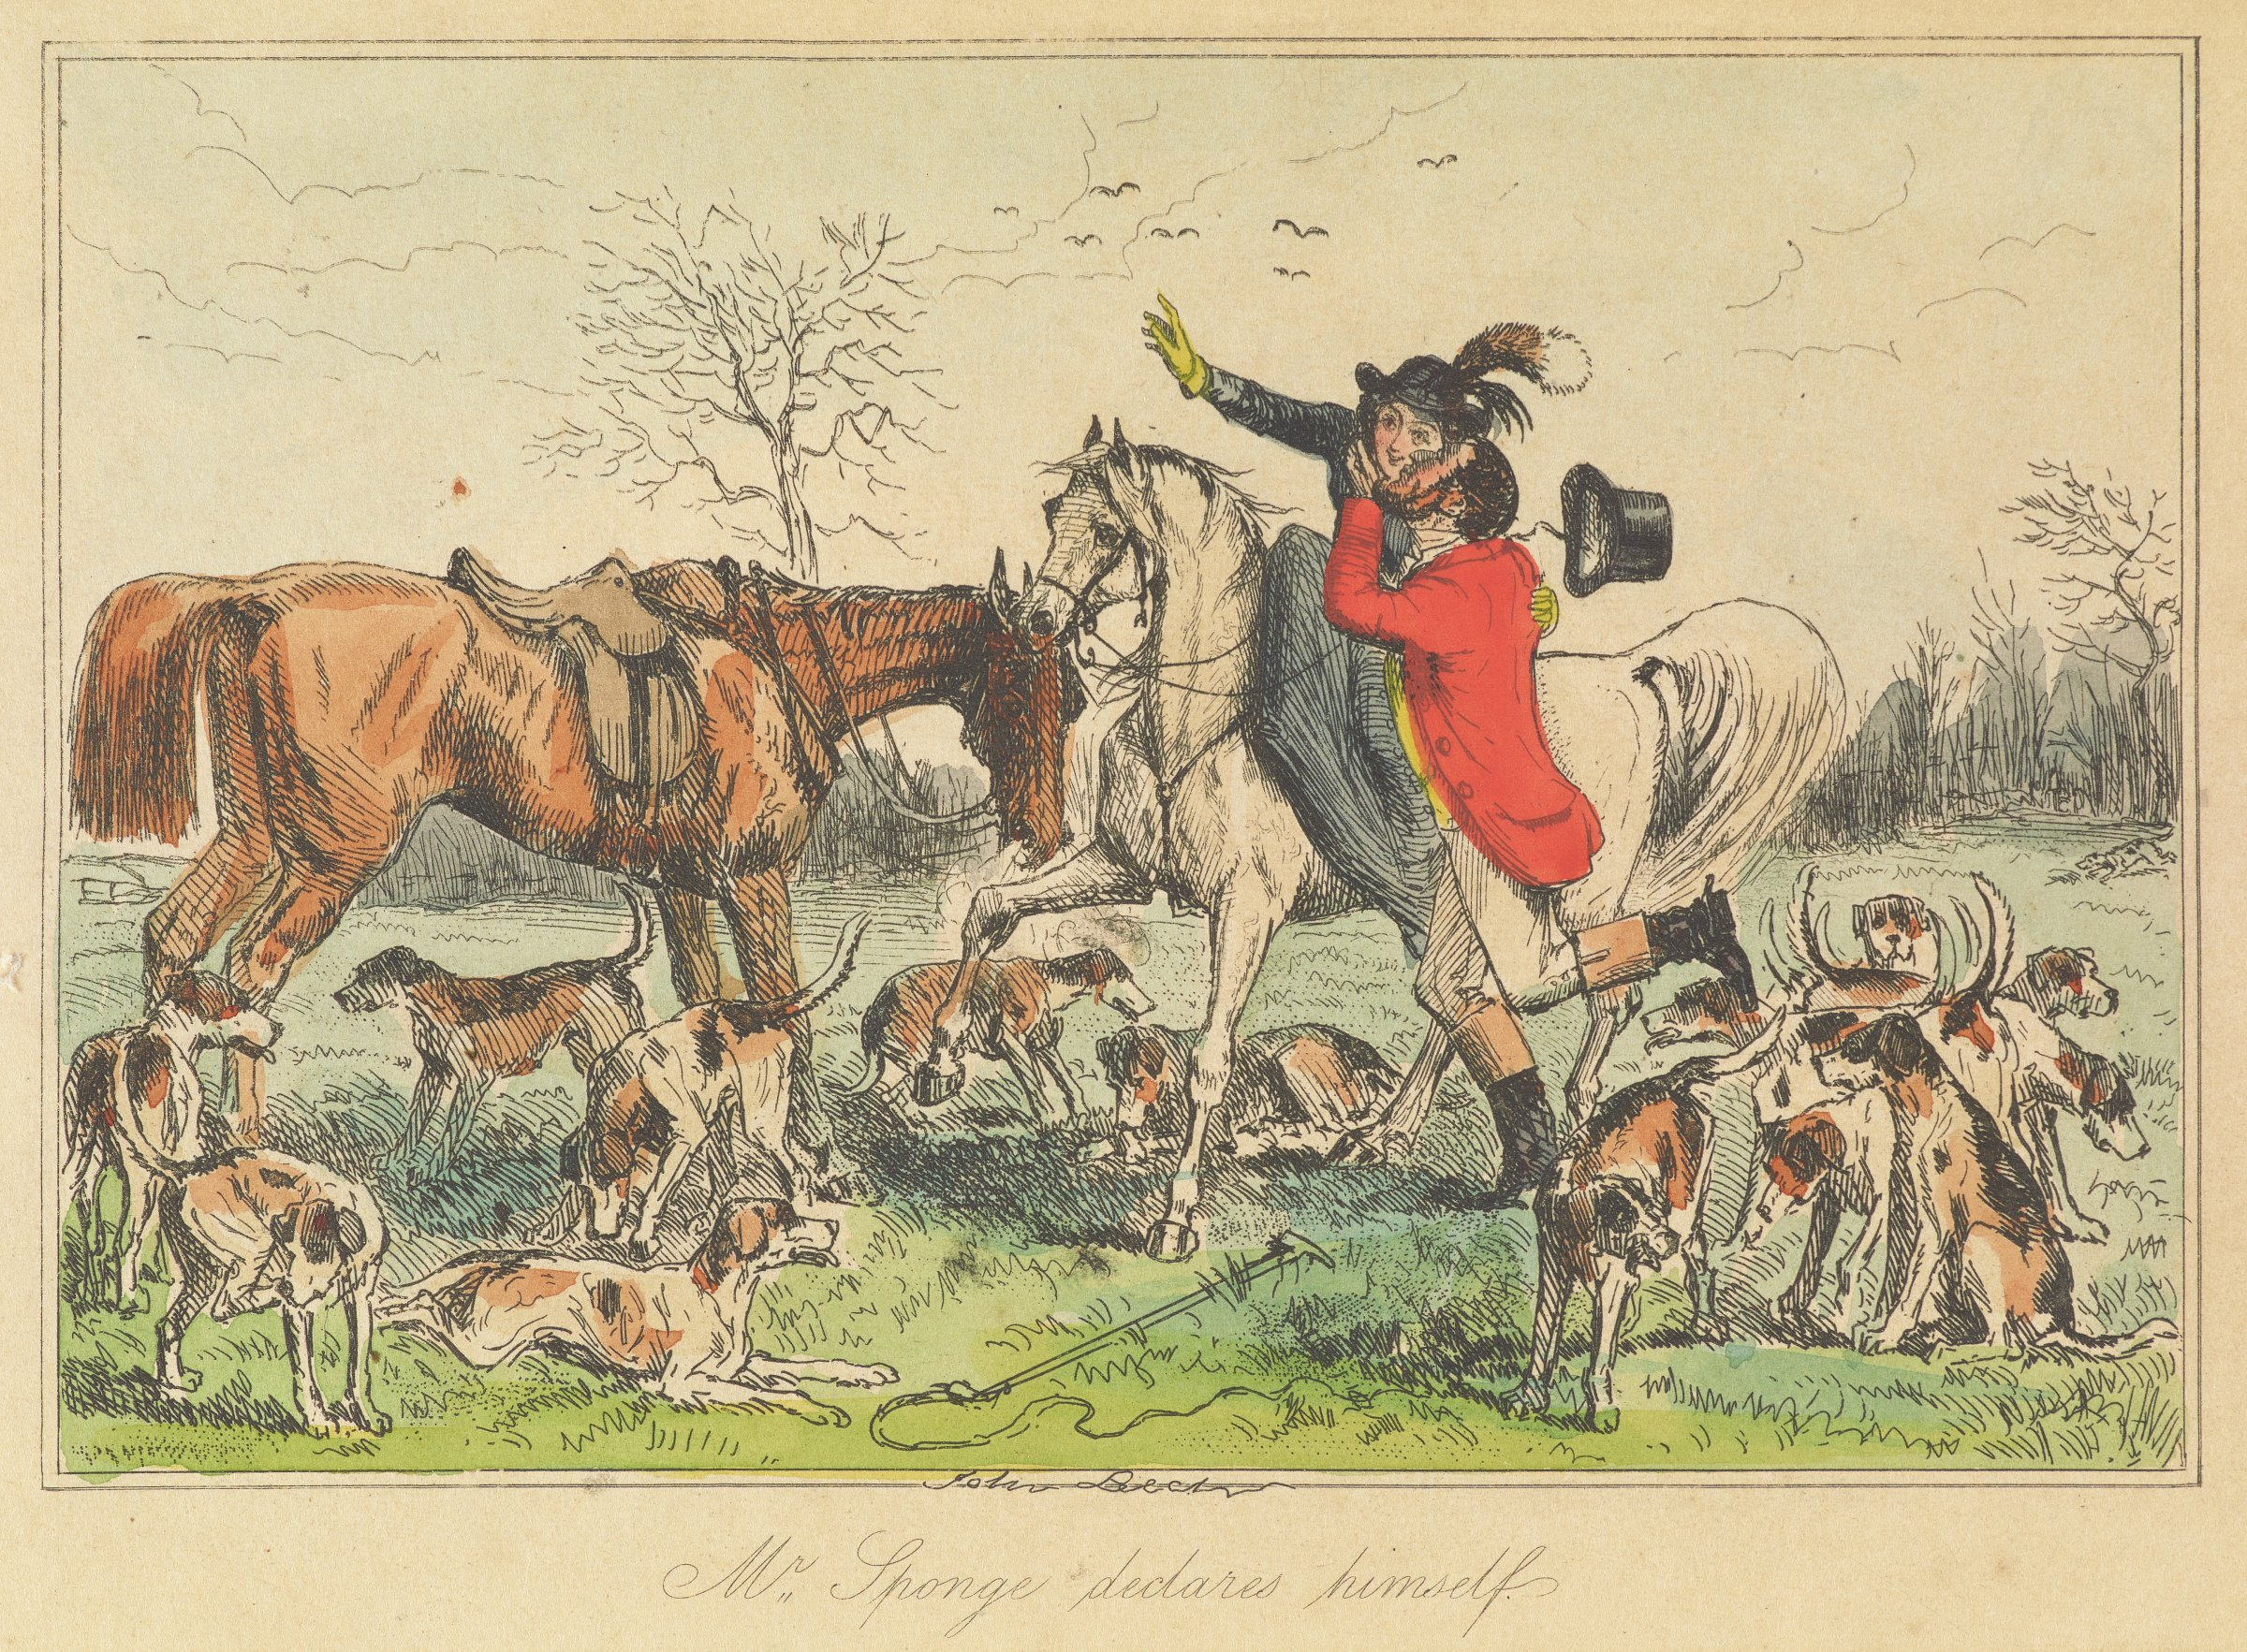 A woman sits on a white horse as a man in a red coat reaches up to kiss her cheek. A brown horse stands on the left. Brown, black, and white spotted dogs surround the figures.